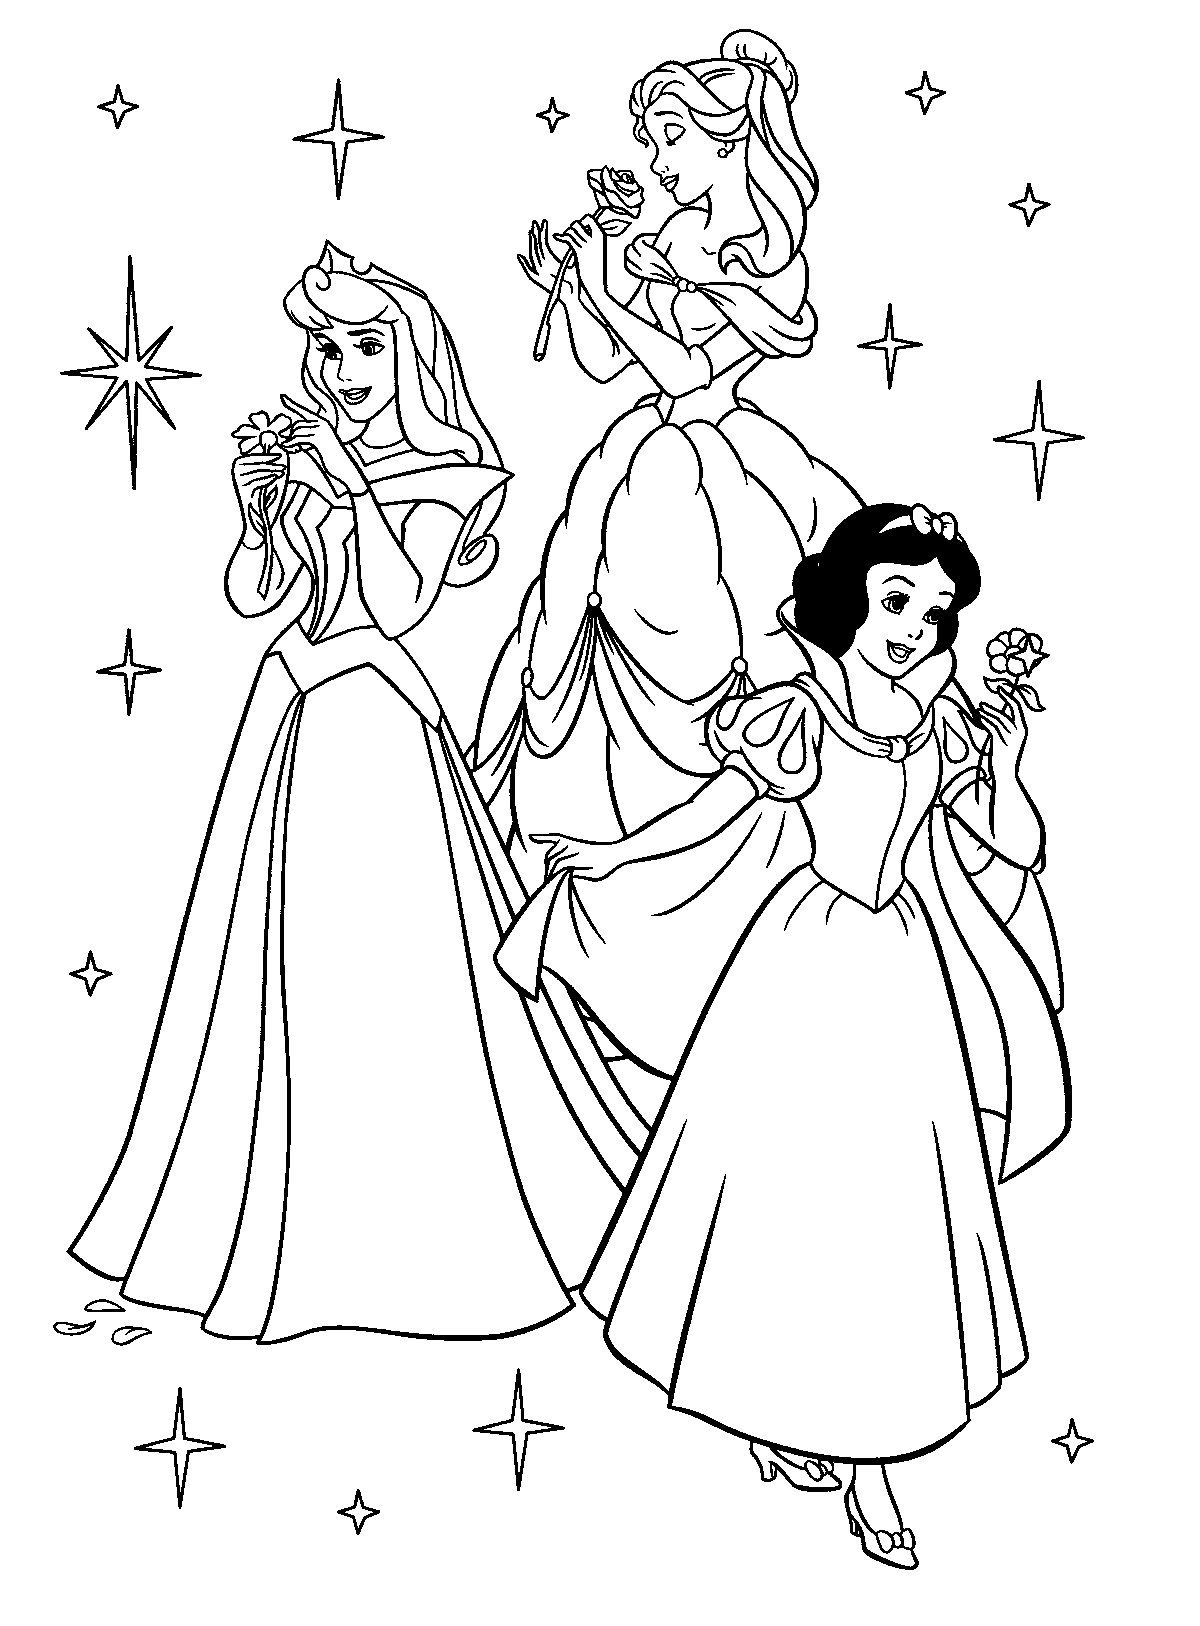 disney princess group coloring pages princess aurora and prince together sleeping beauty coloring disney pages group princess